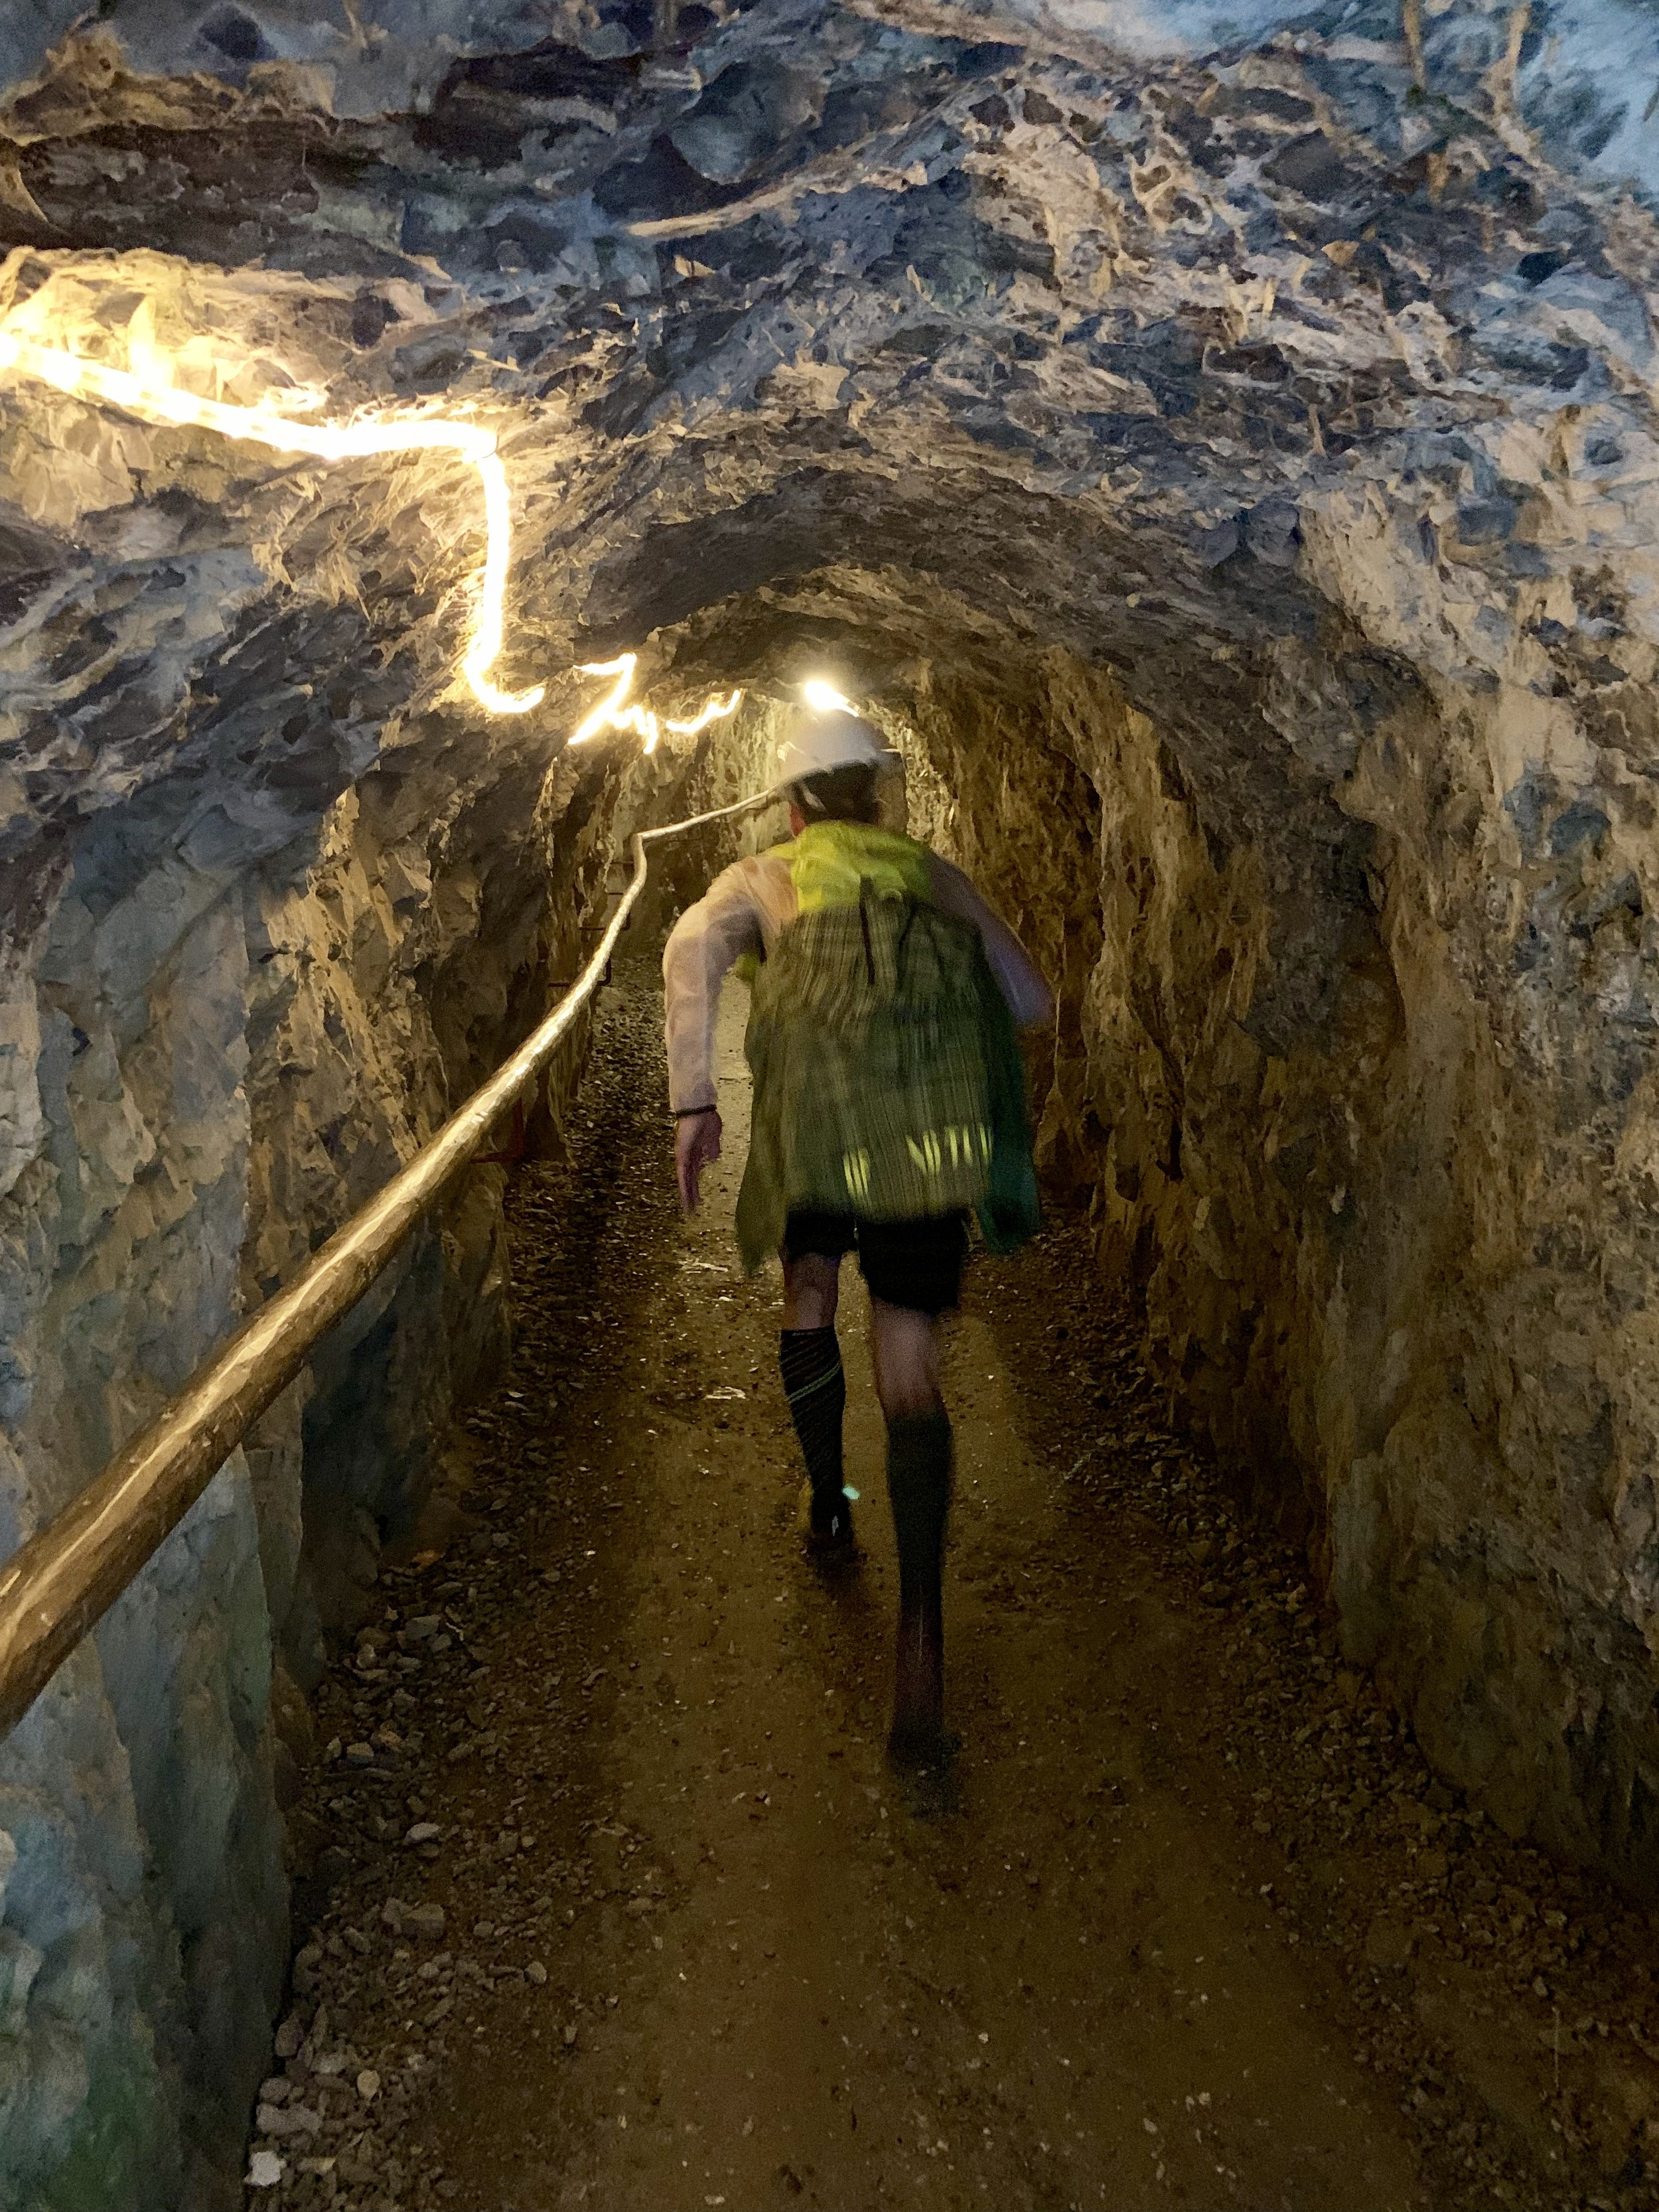 The only time we crossed a mountain by running through a tunnel